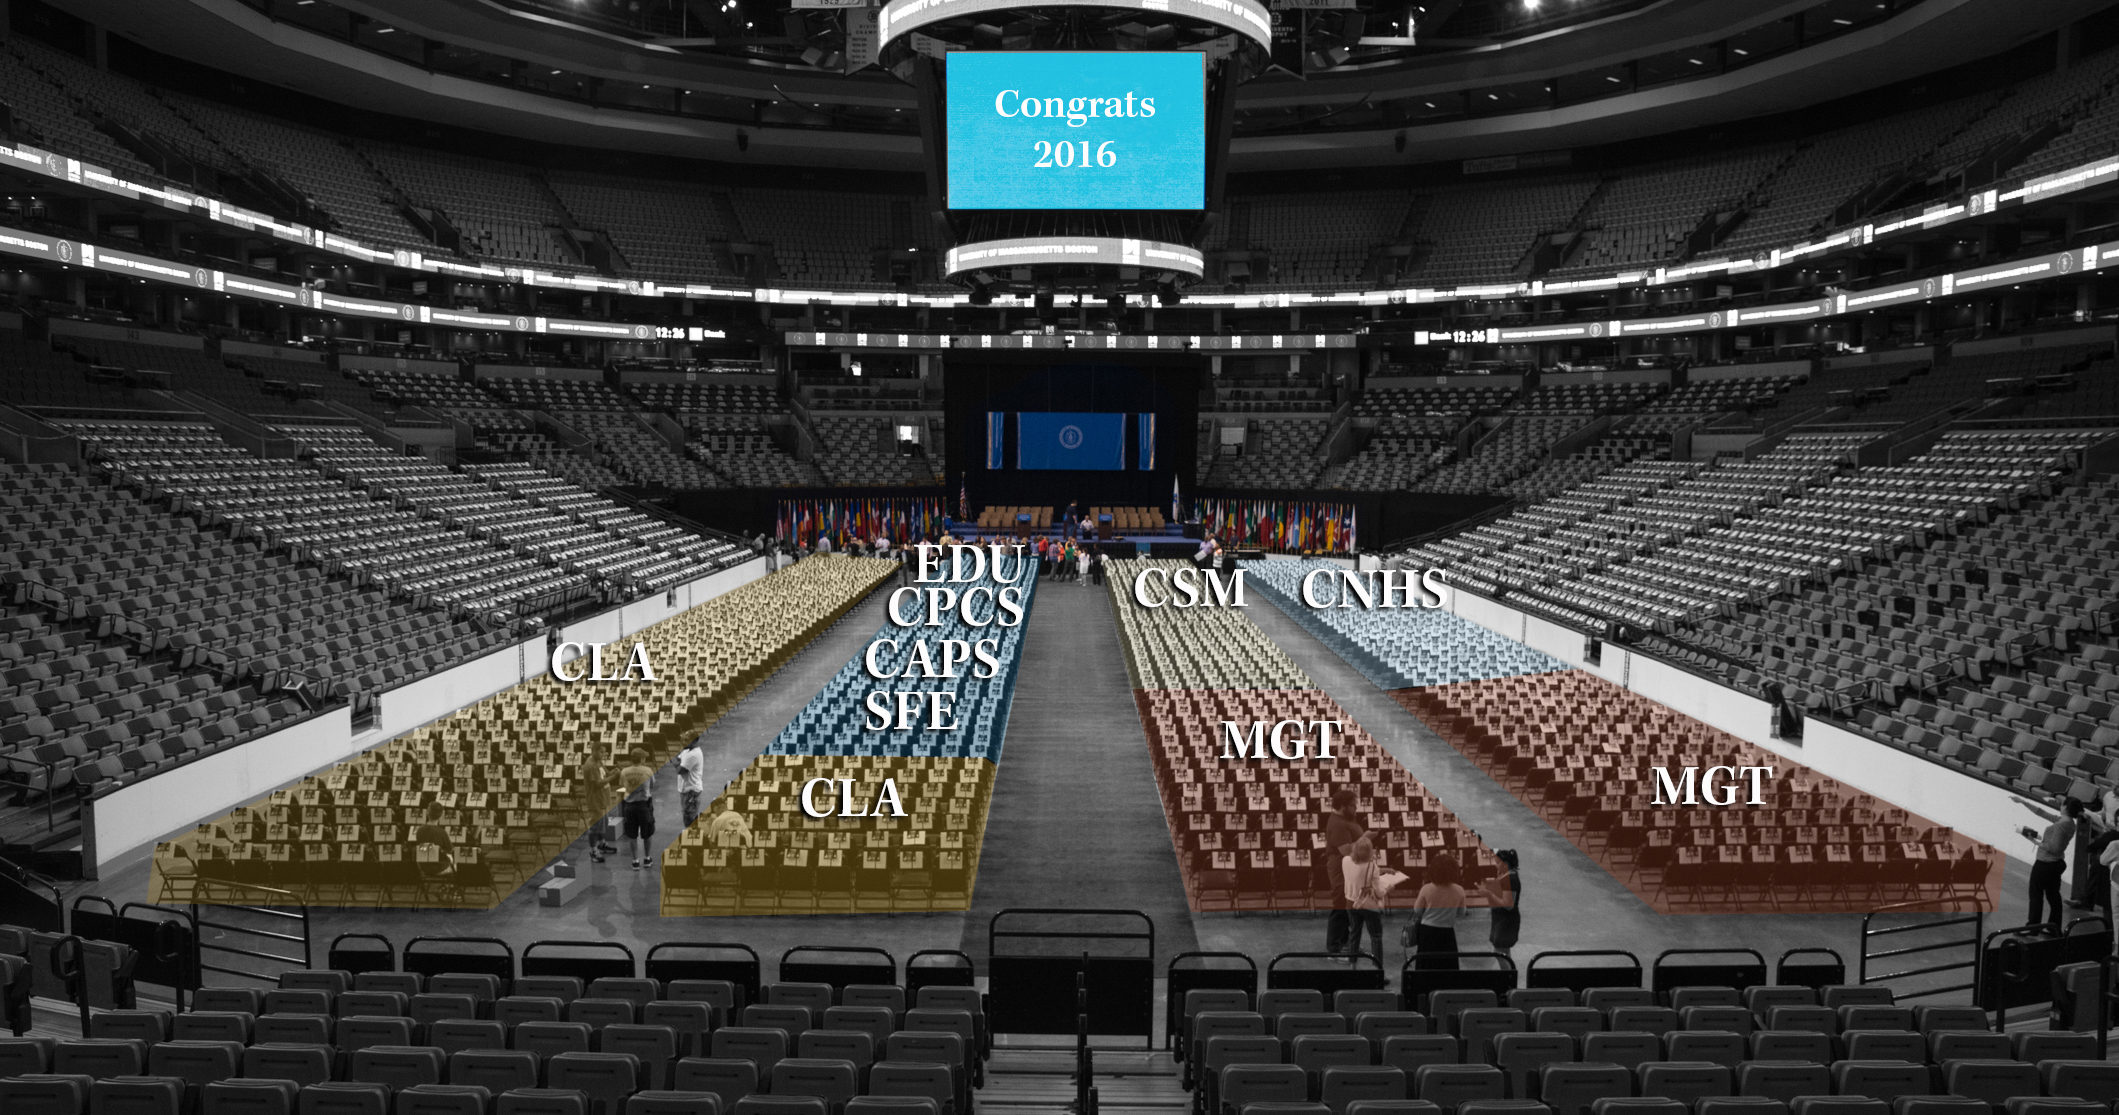 Find Your Graduate at the TD Garden